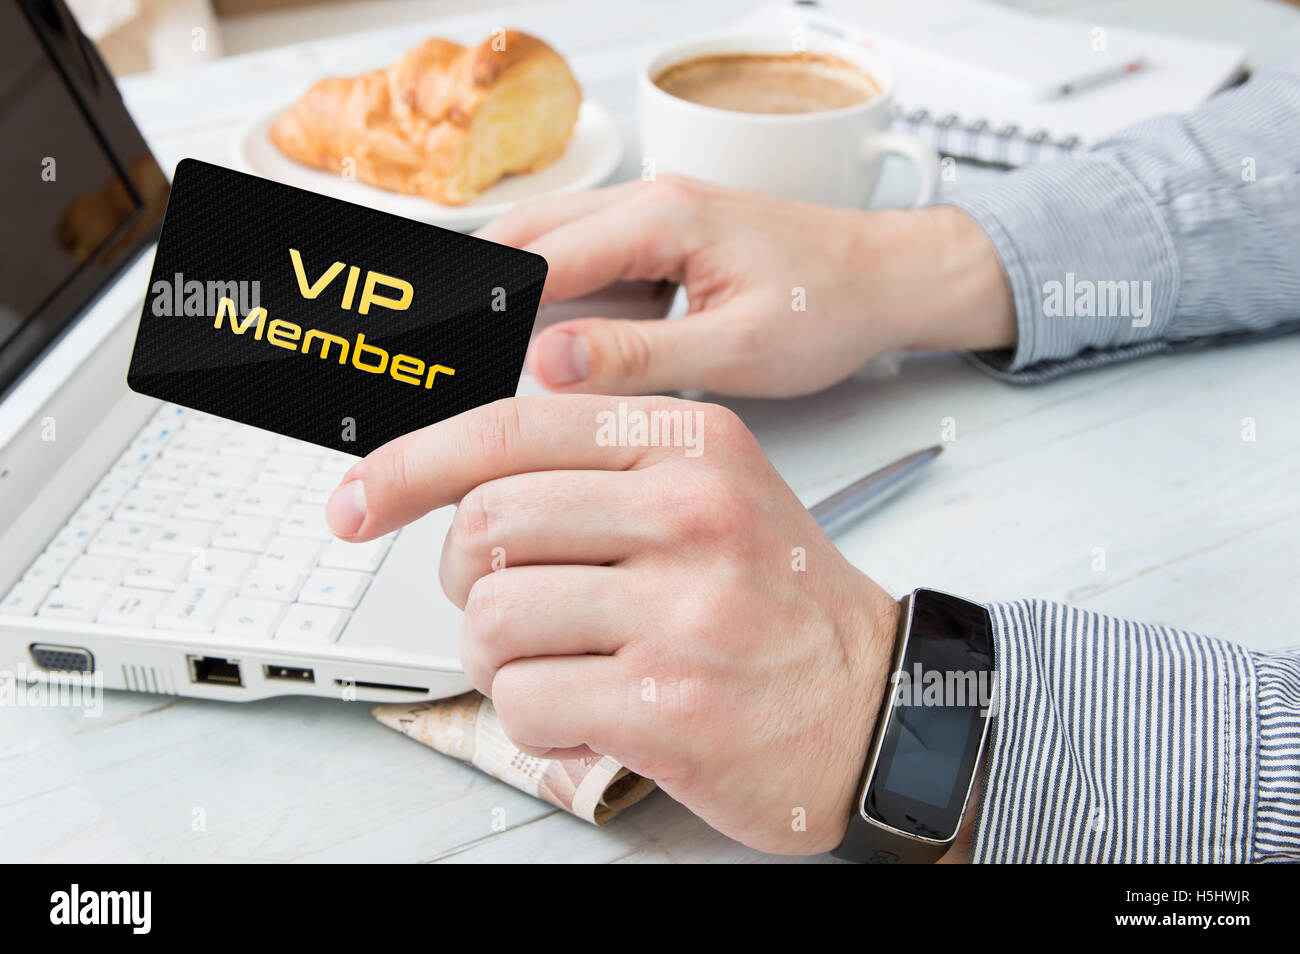 Man uses VIP member card on the internet - Stock Image